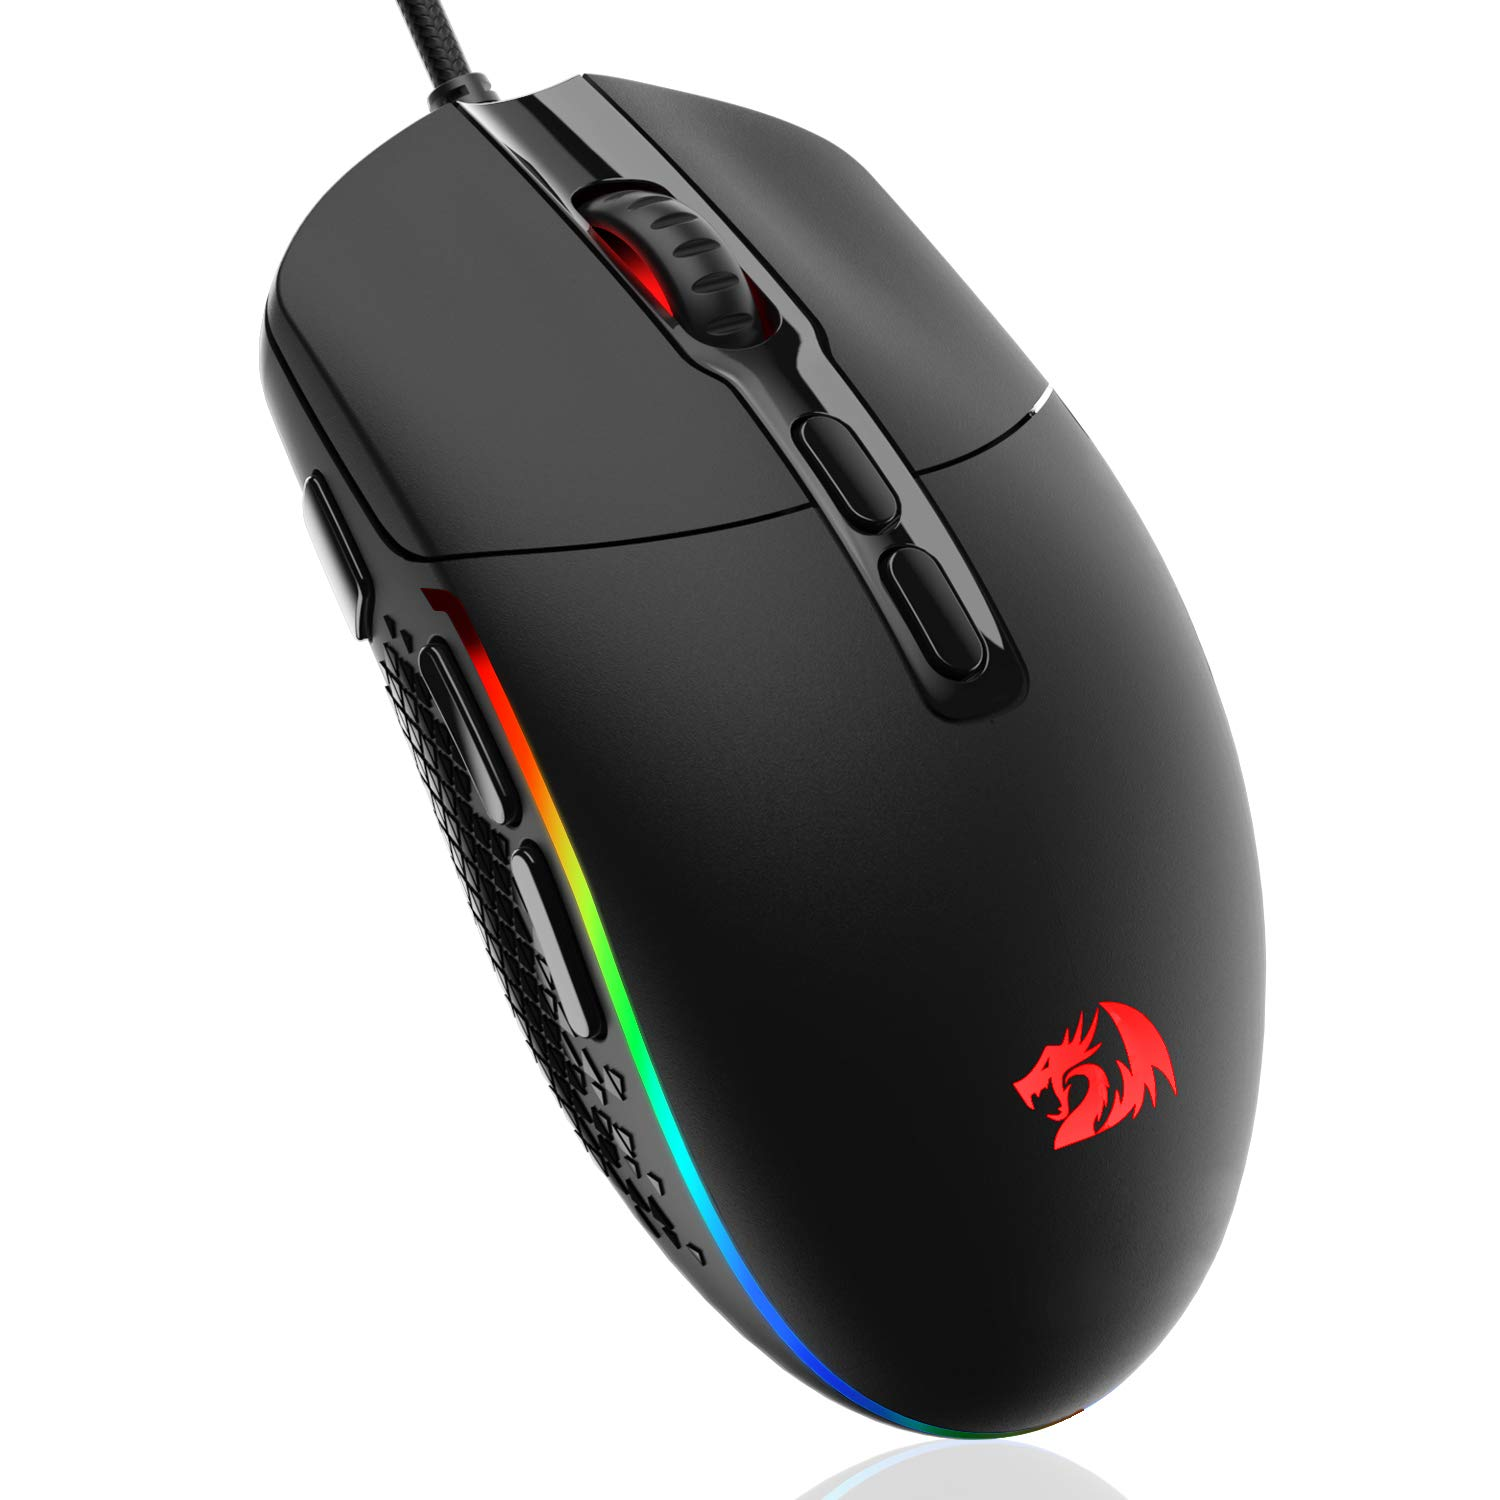 Redragon M719 Invader Wired Optical Gaming Mouse, 7 Programmable Buttons, RGB Backlit, 10,000 DPI, Ergonomic PC Computer Gaming Mice with Fire Button